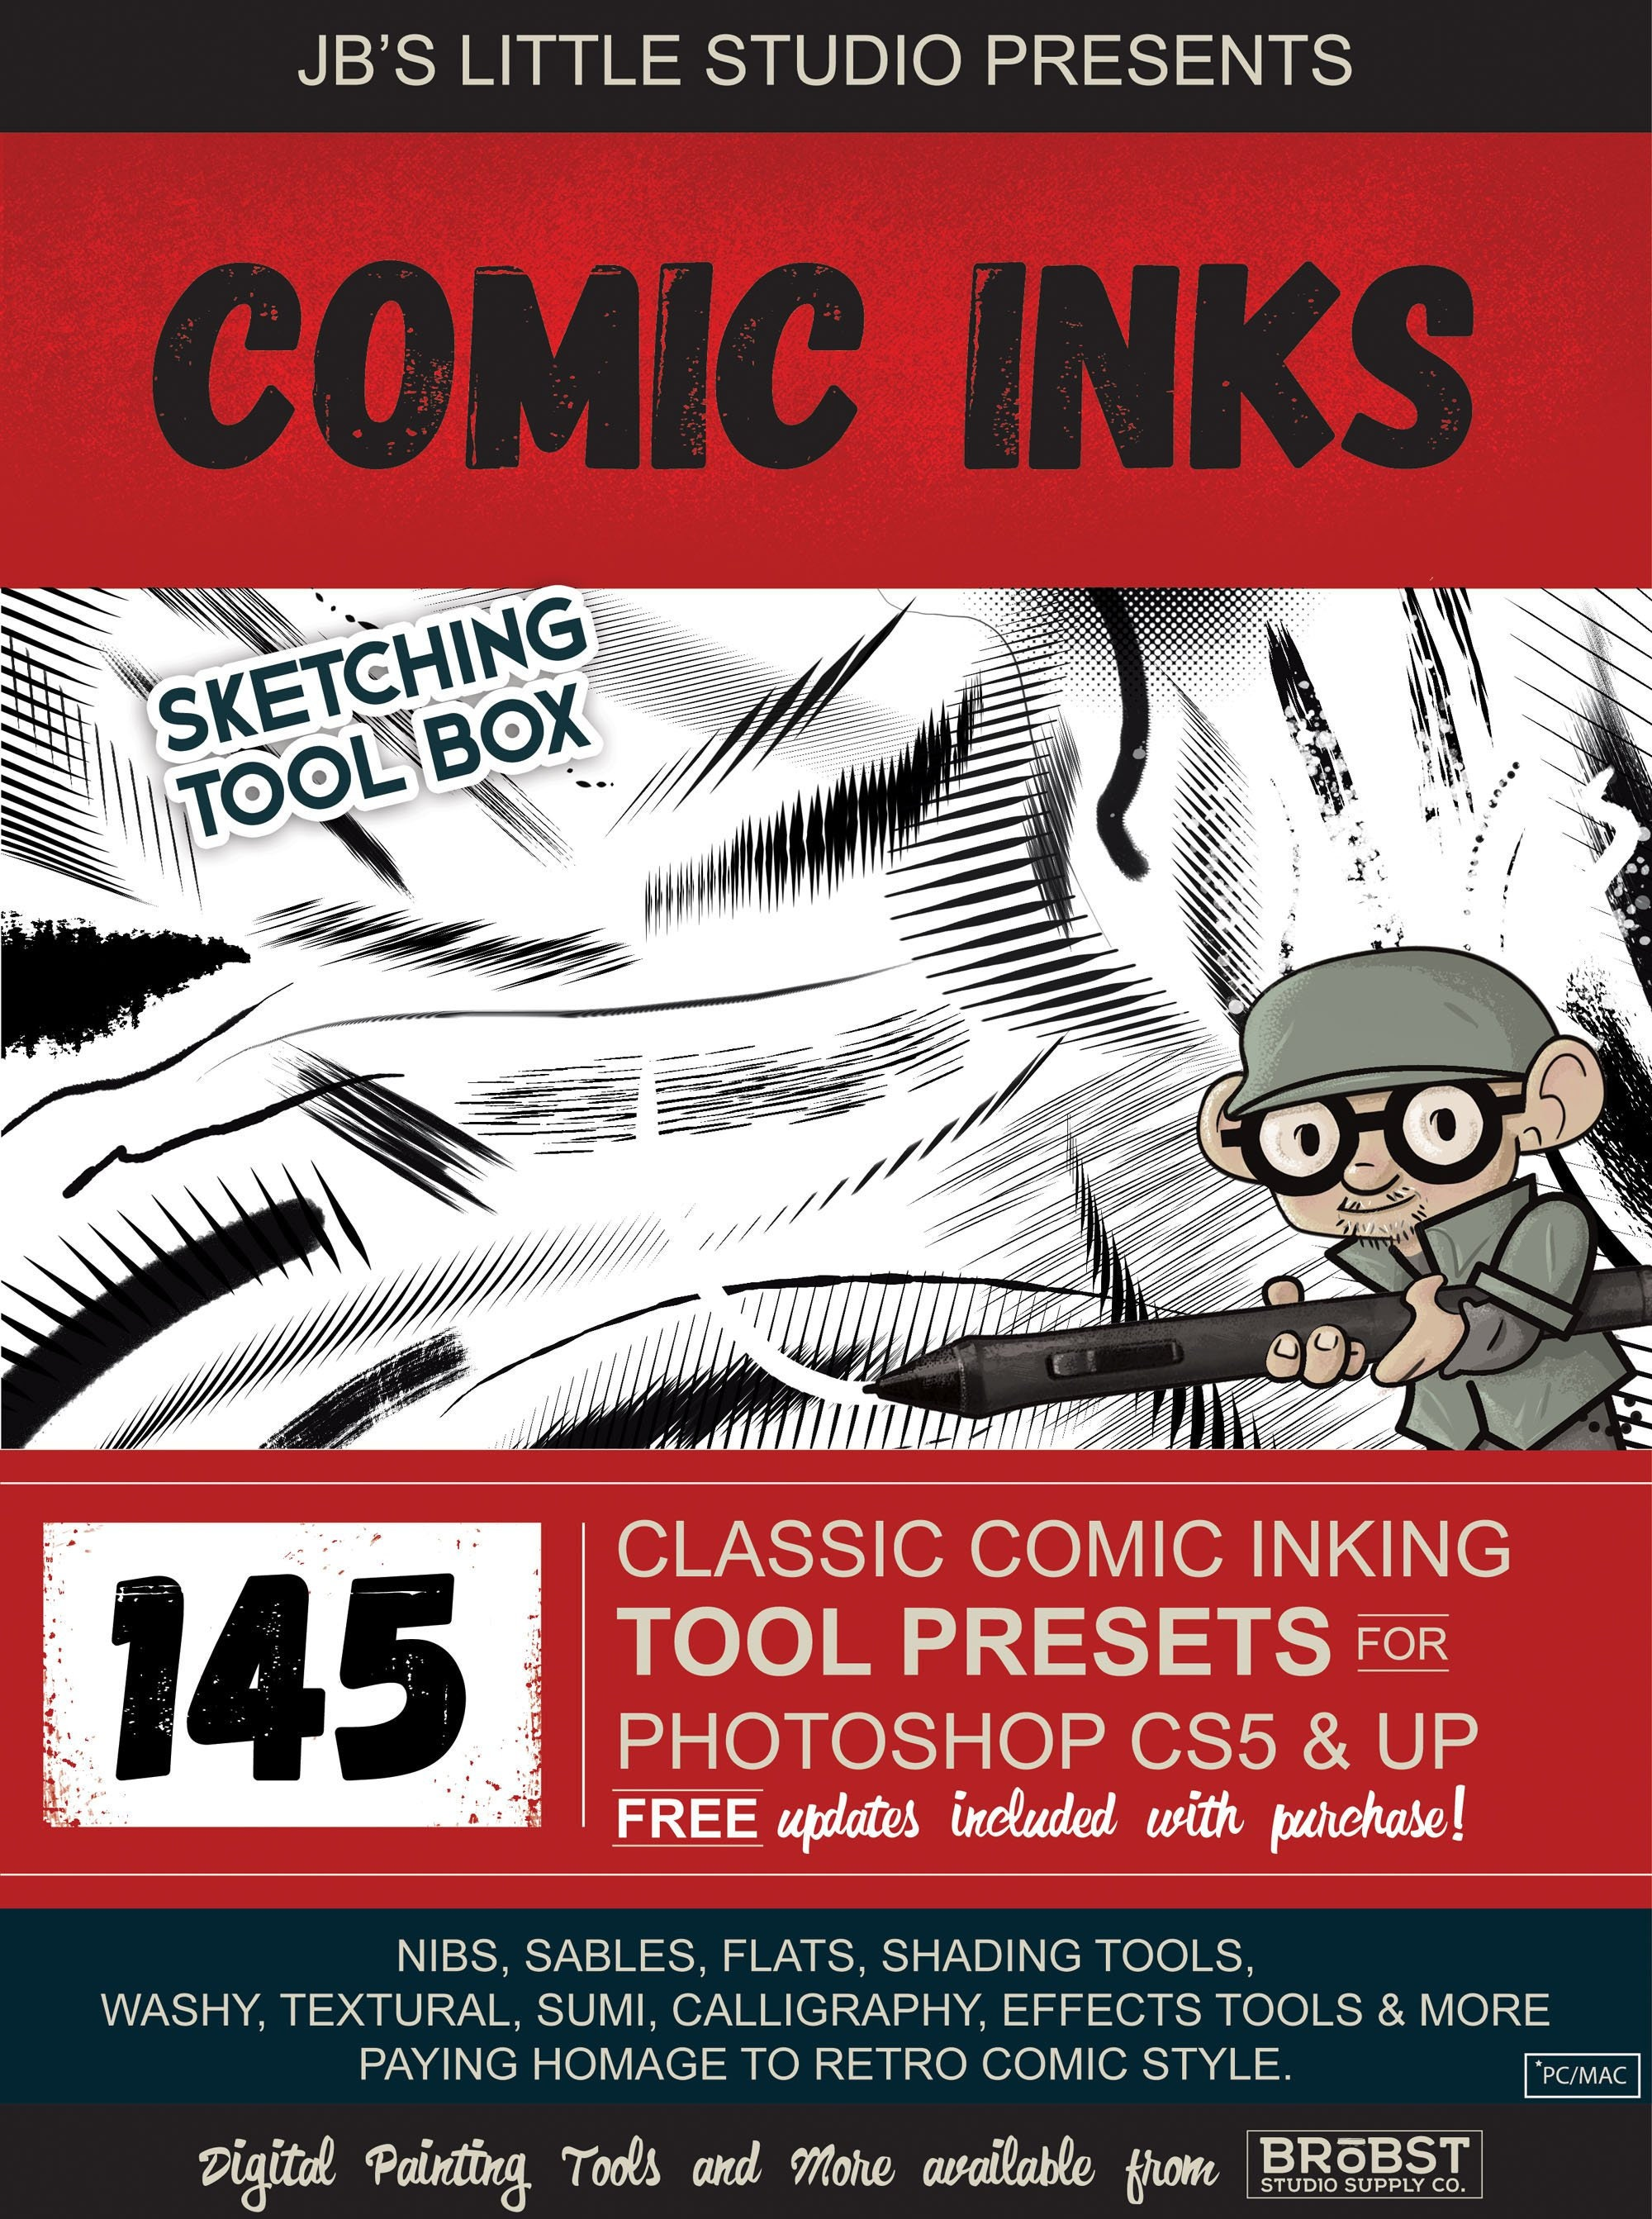 Comic Ink Brush Tool Presets for Photoshop CS5 + (CC)